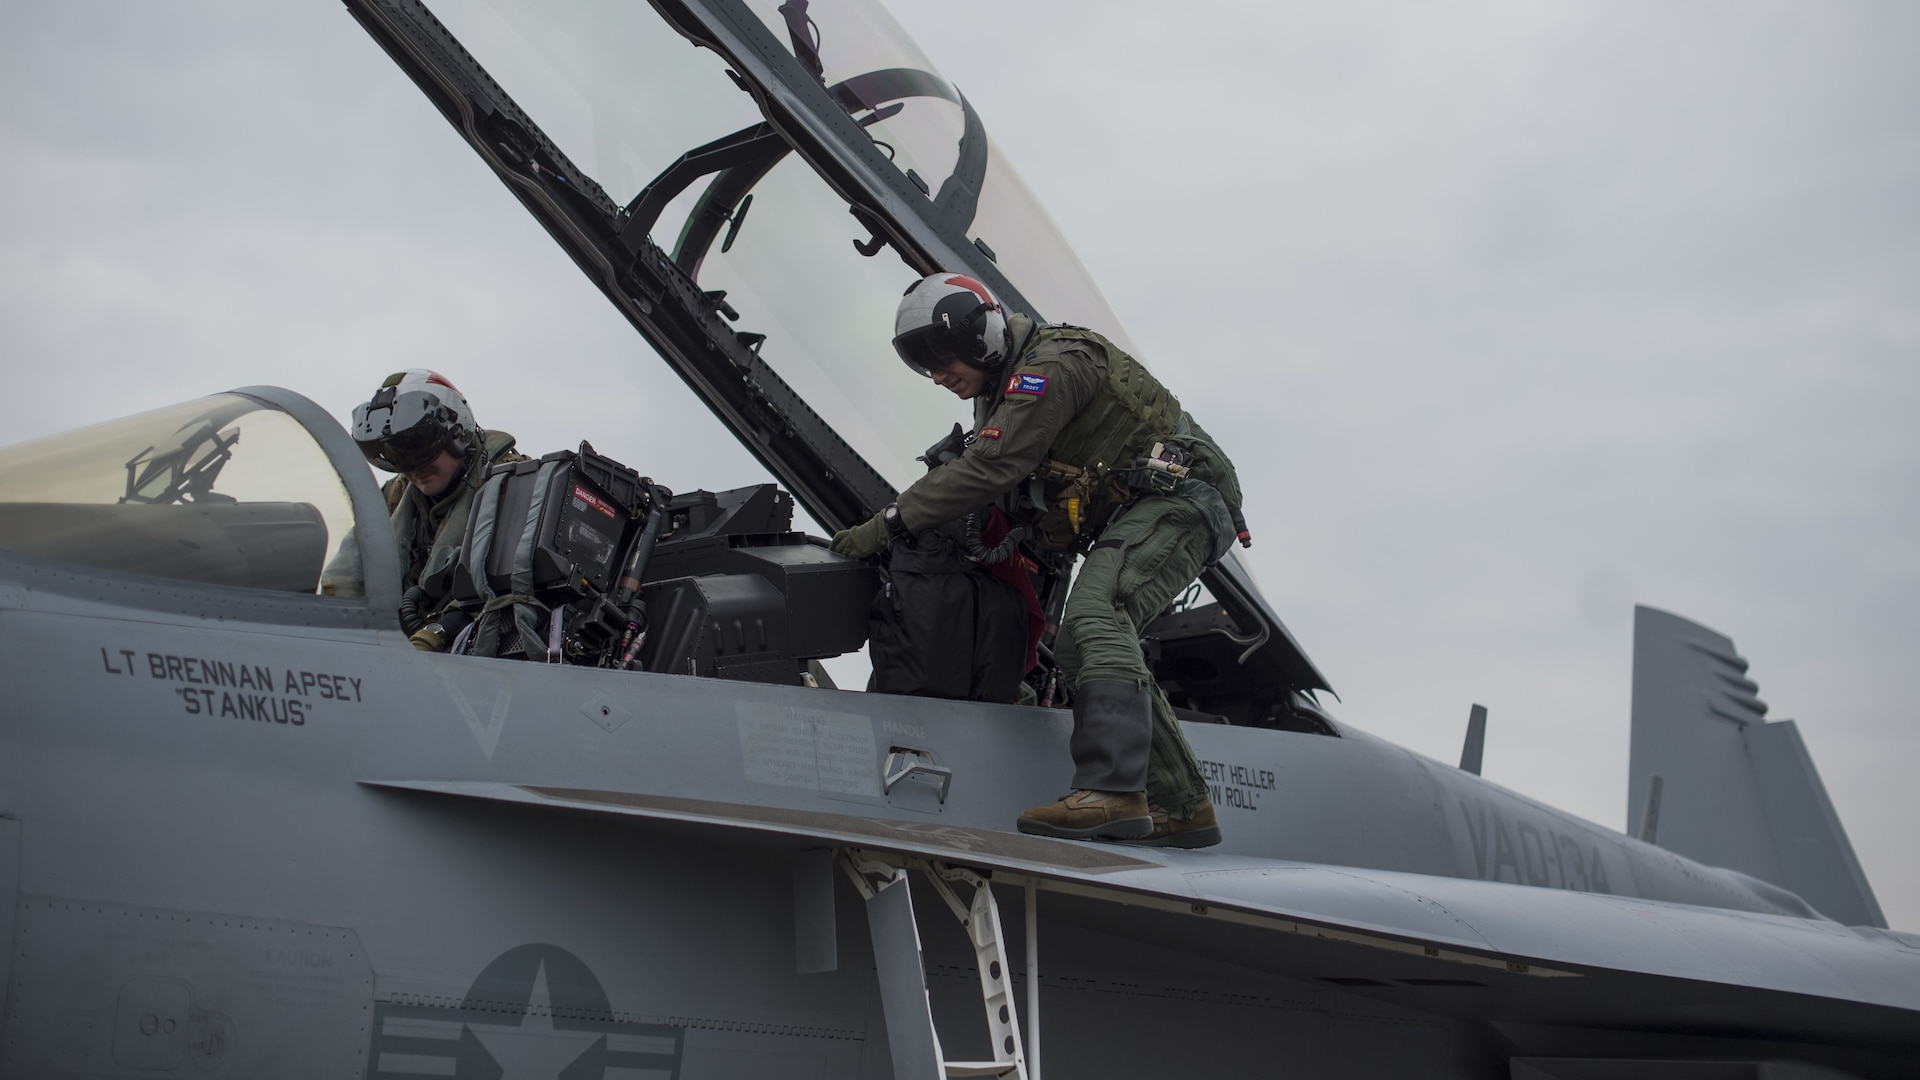 Sister services exchange Growler, Viper familiarization flights